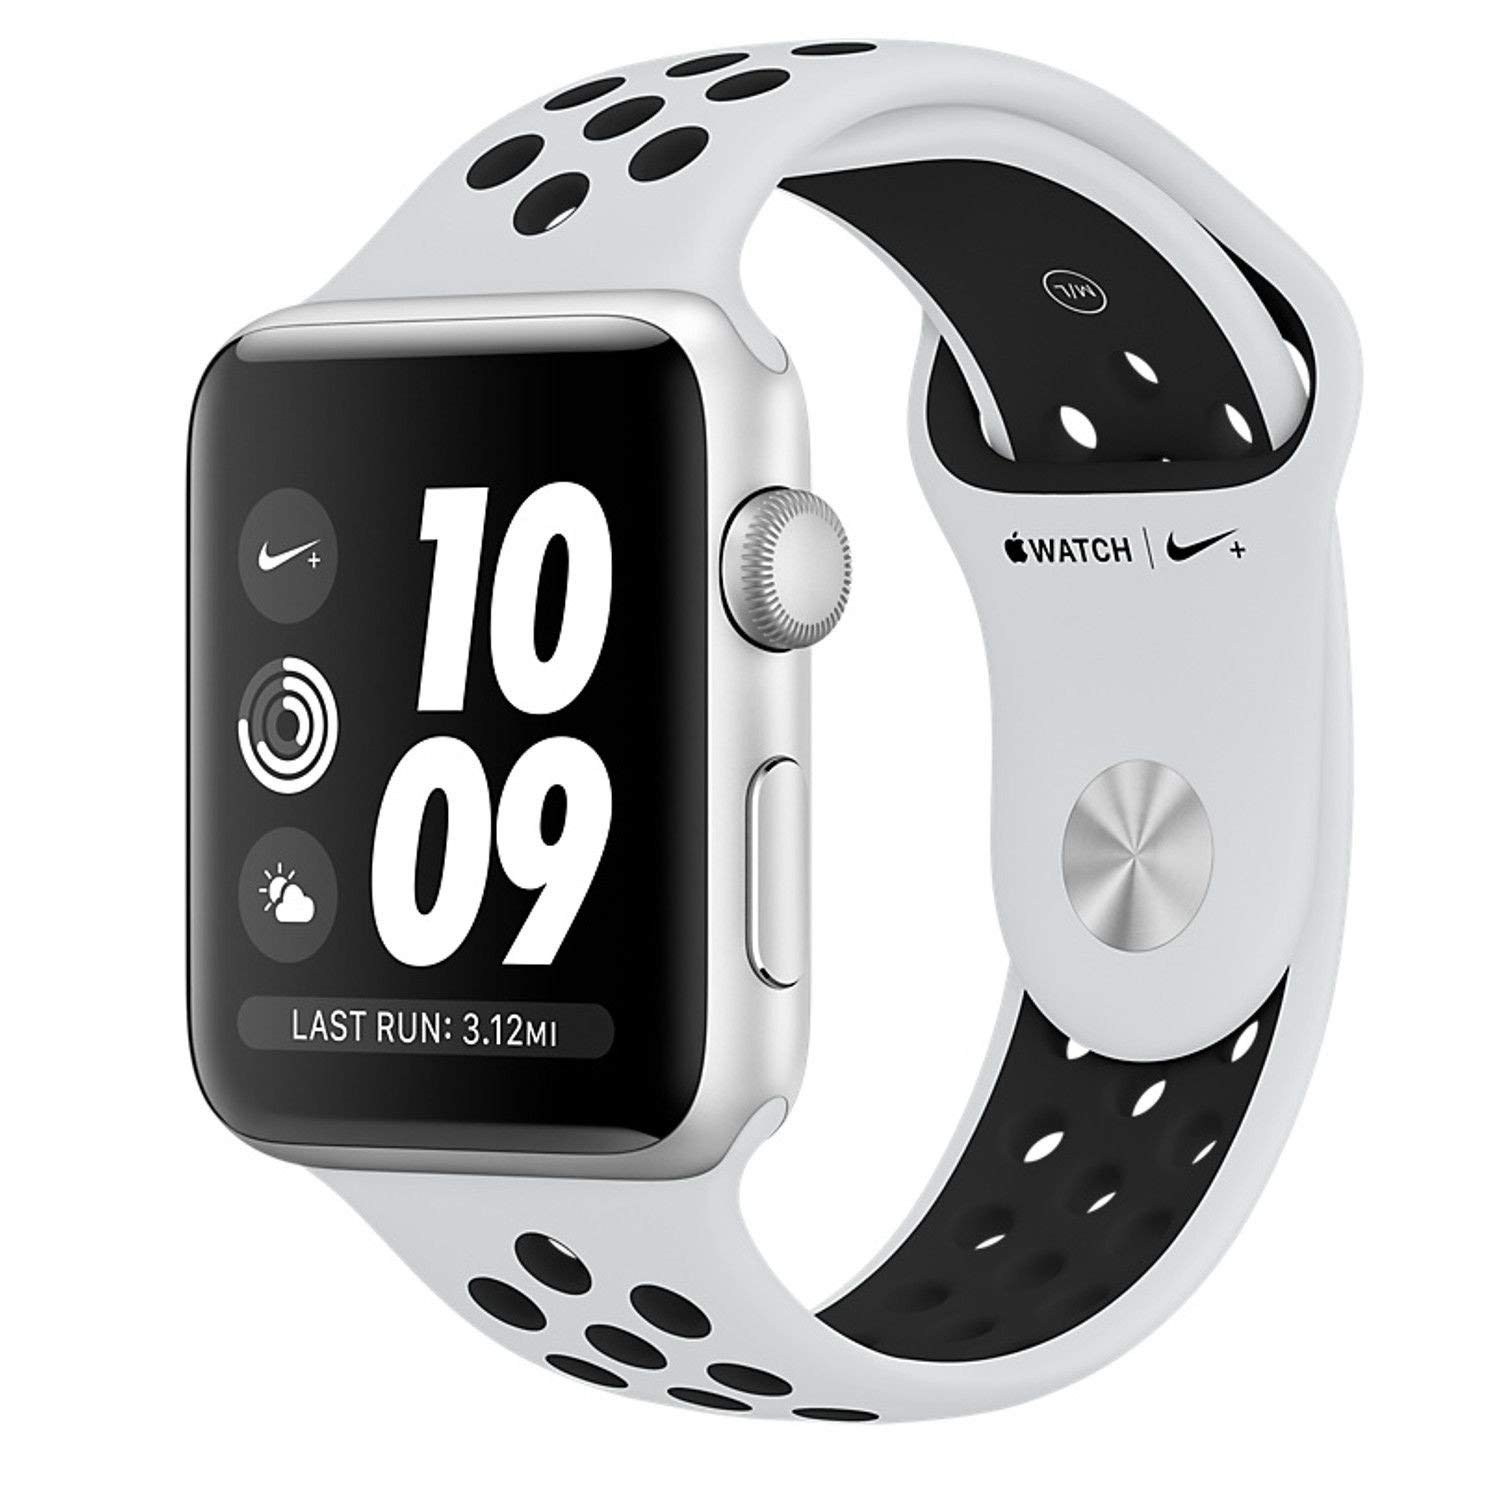 Apple Watch S3 Nike+ - Reloj Inteligente, Color Plata: Amazon.es: Electrónica